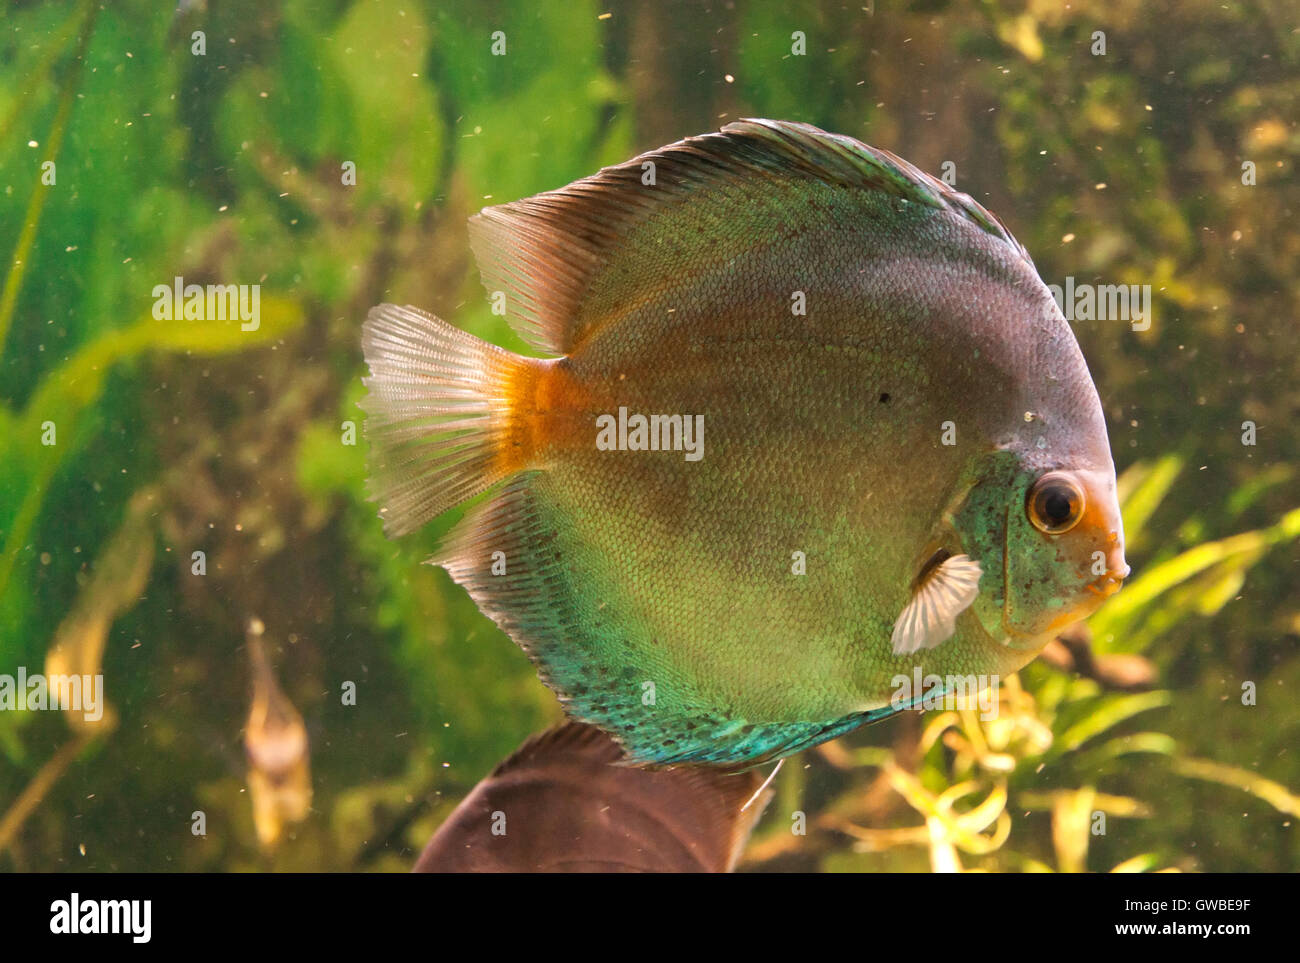 Morph Of Exotic Tropical Fish Swimming In Aquarium Can Be Used As A Wallpaper Or Postcard